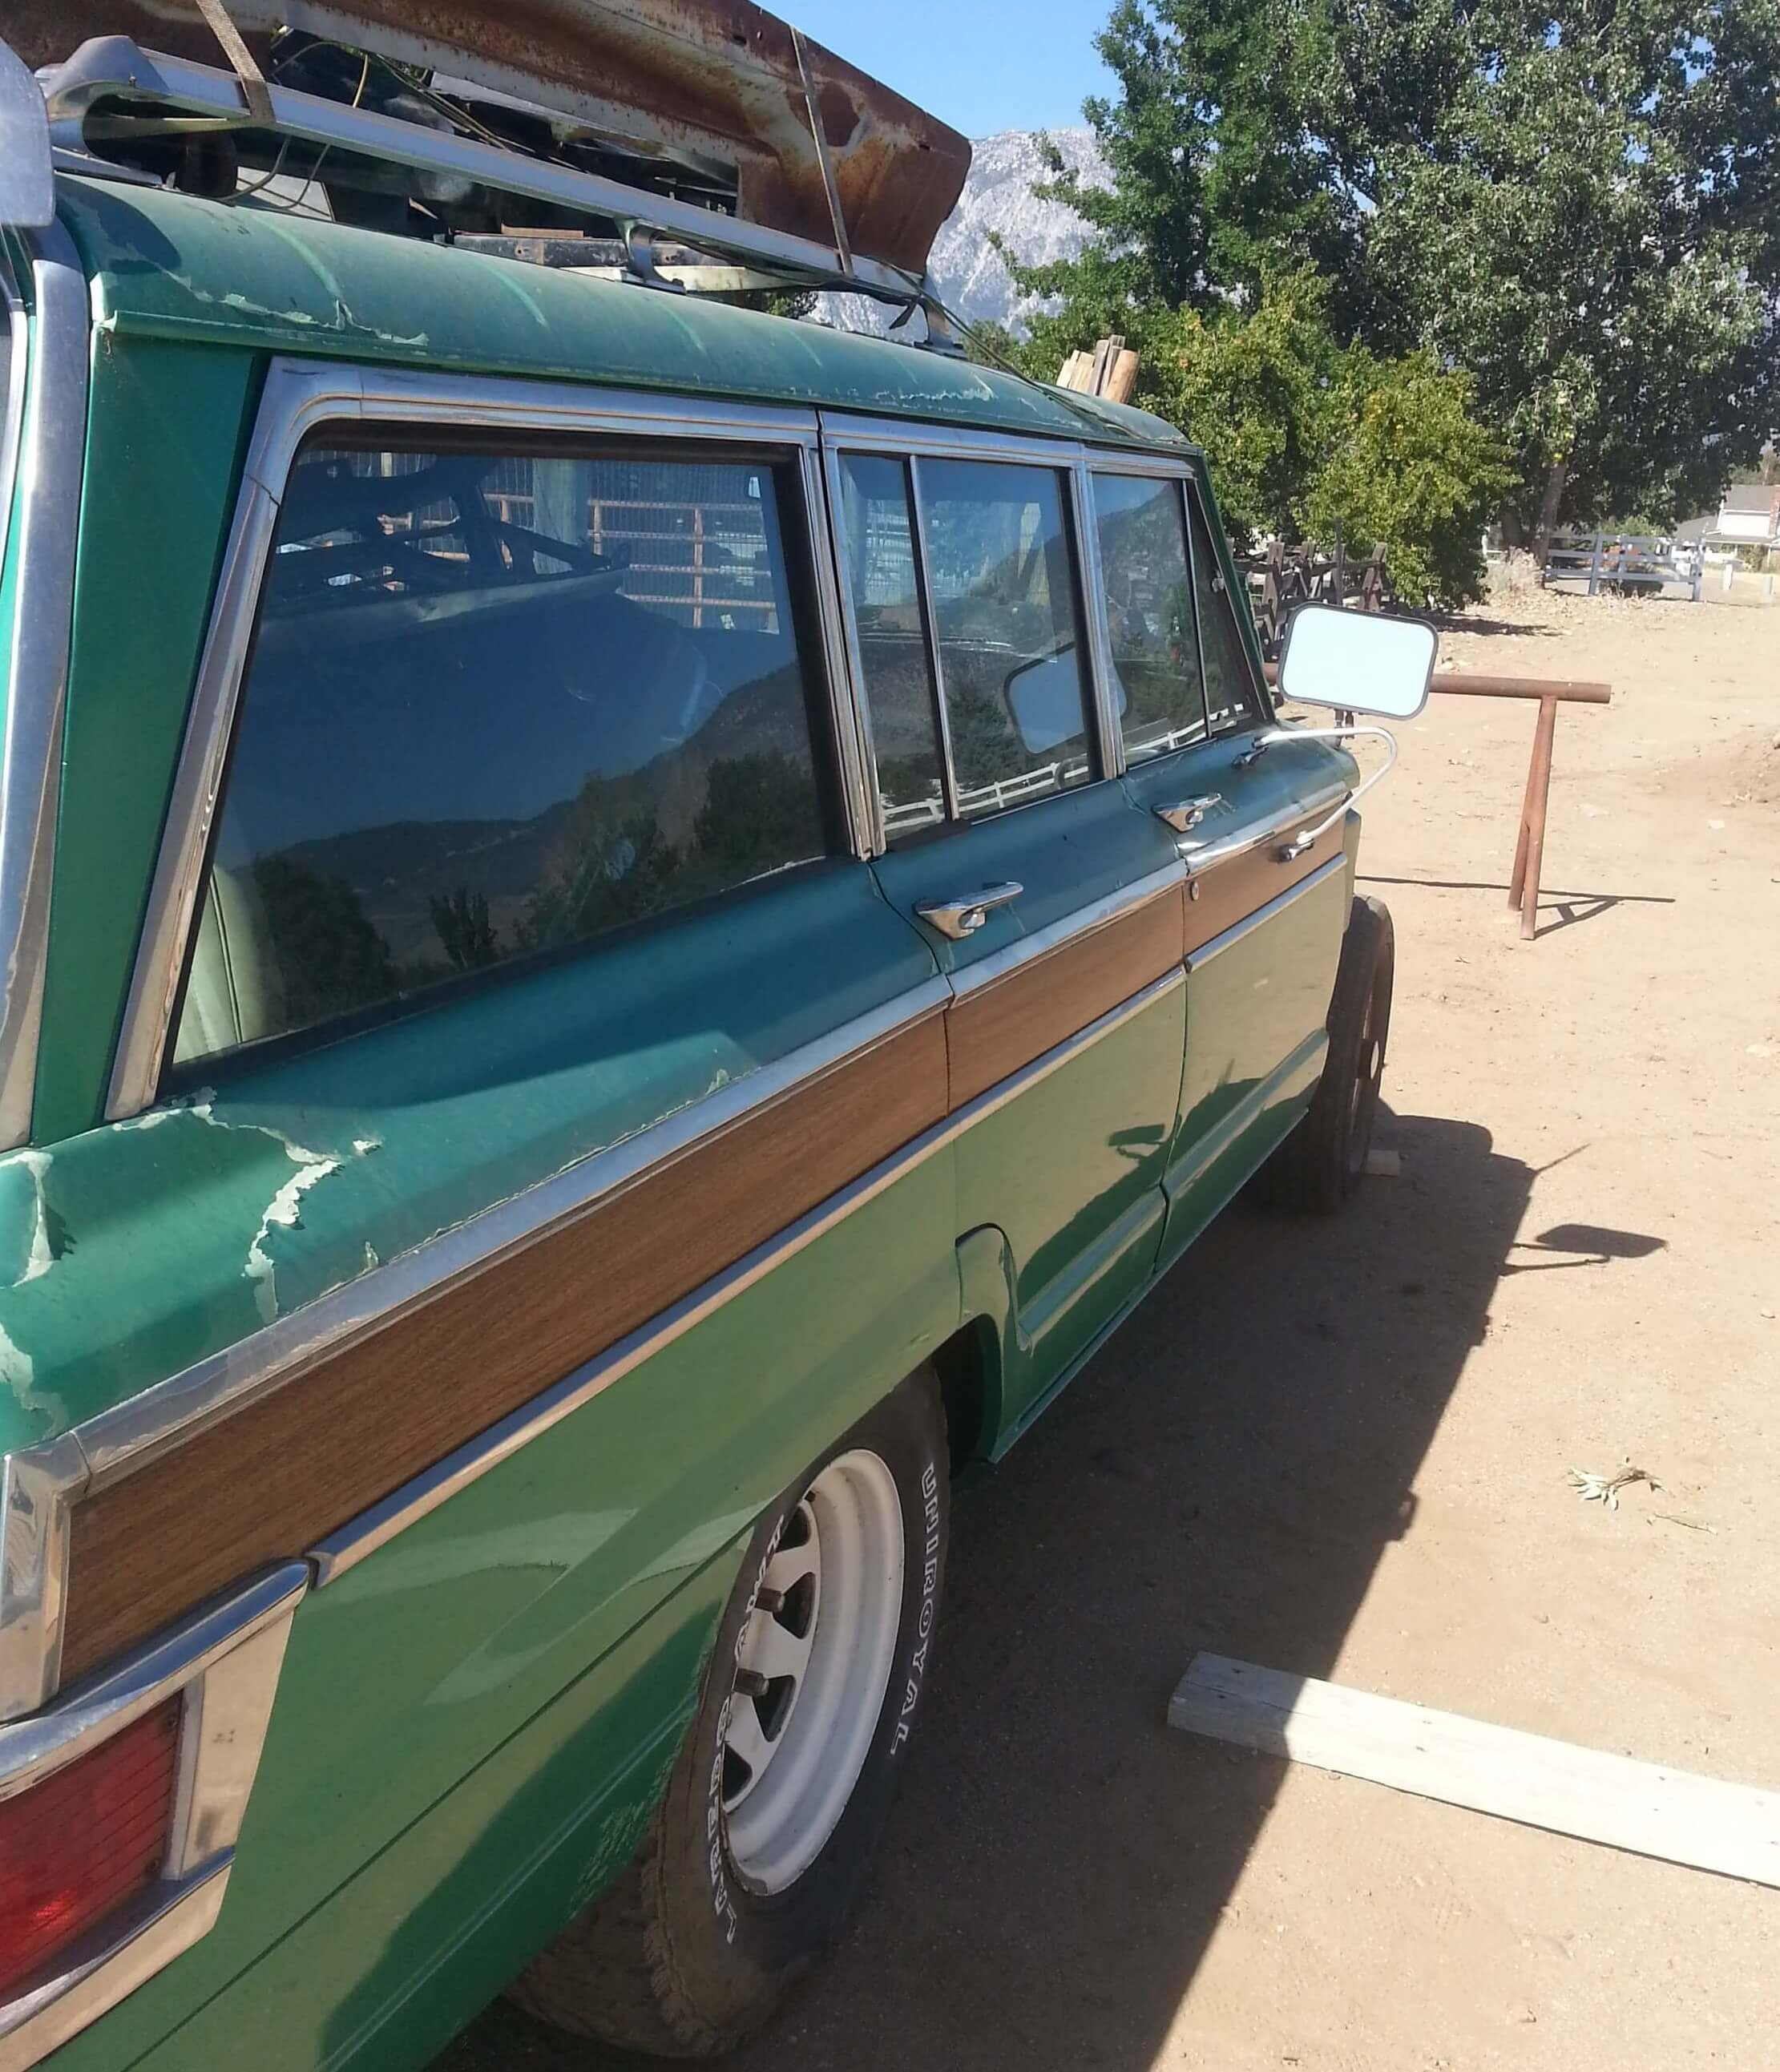 Josh's 1973 Jeep Wagoneer - Holley My Garage